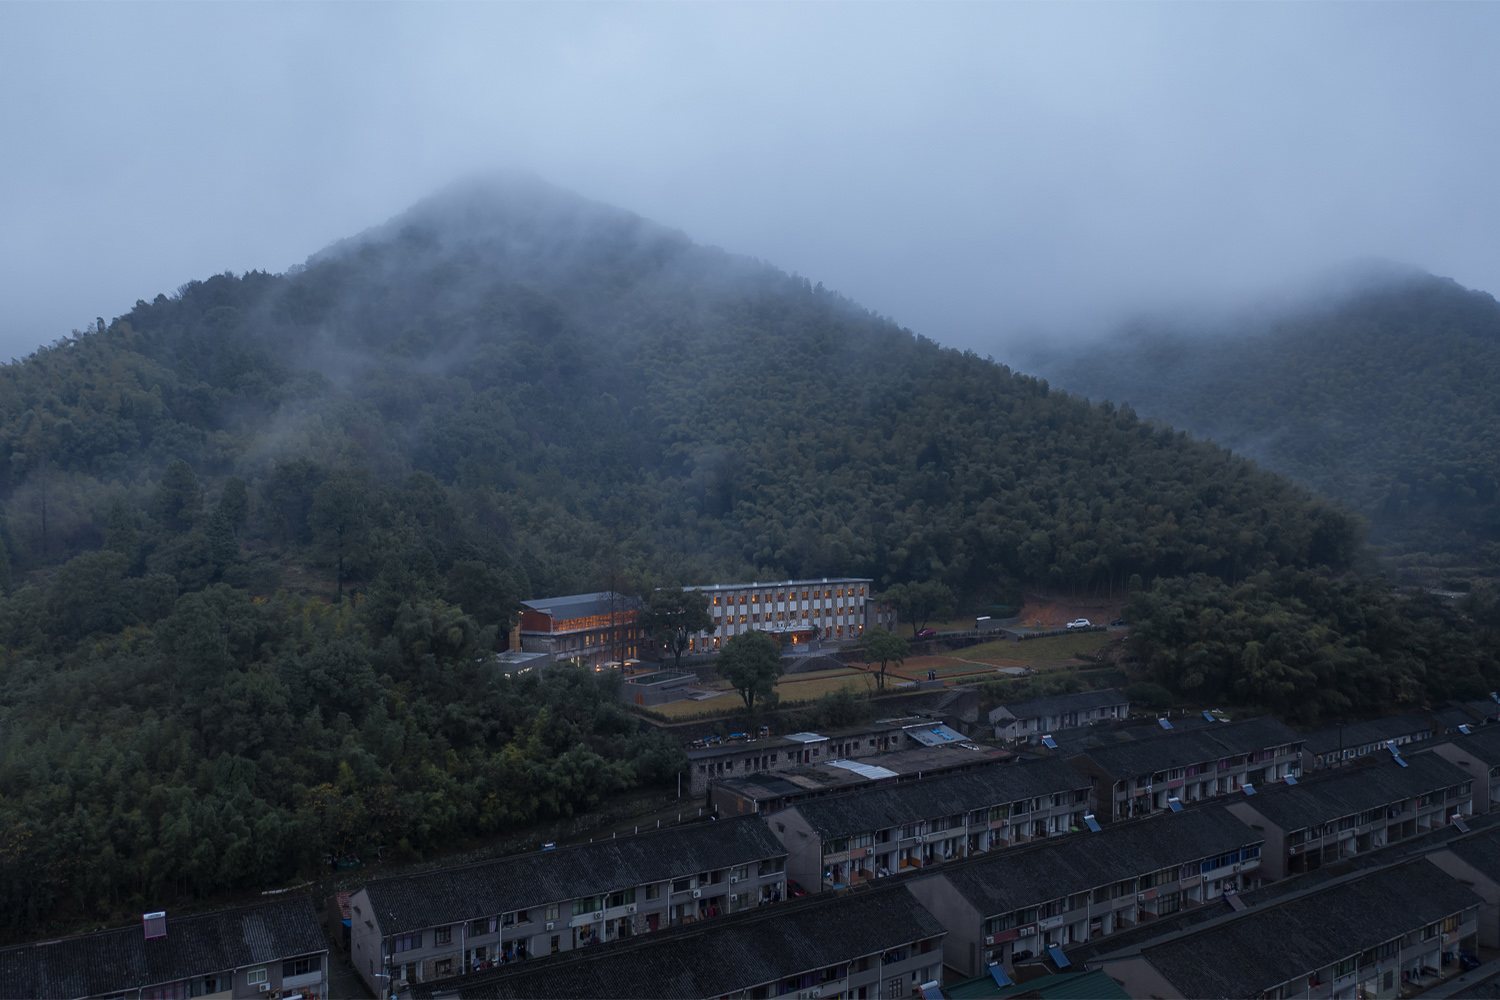 Aerial View of the Hotel and the Village Xuguo Tang